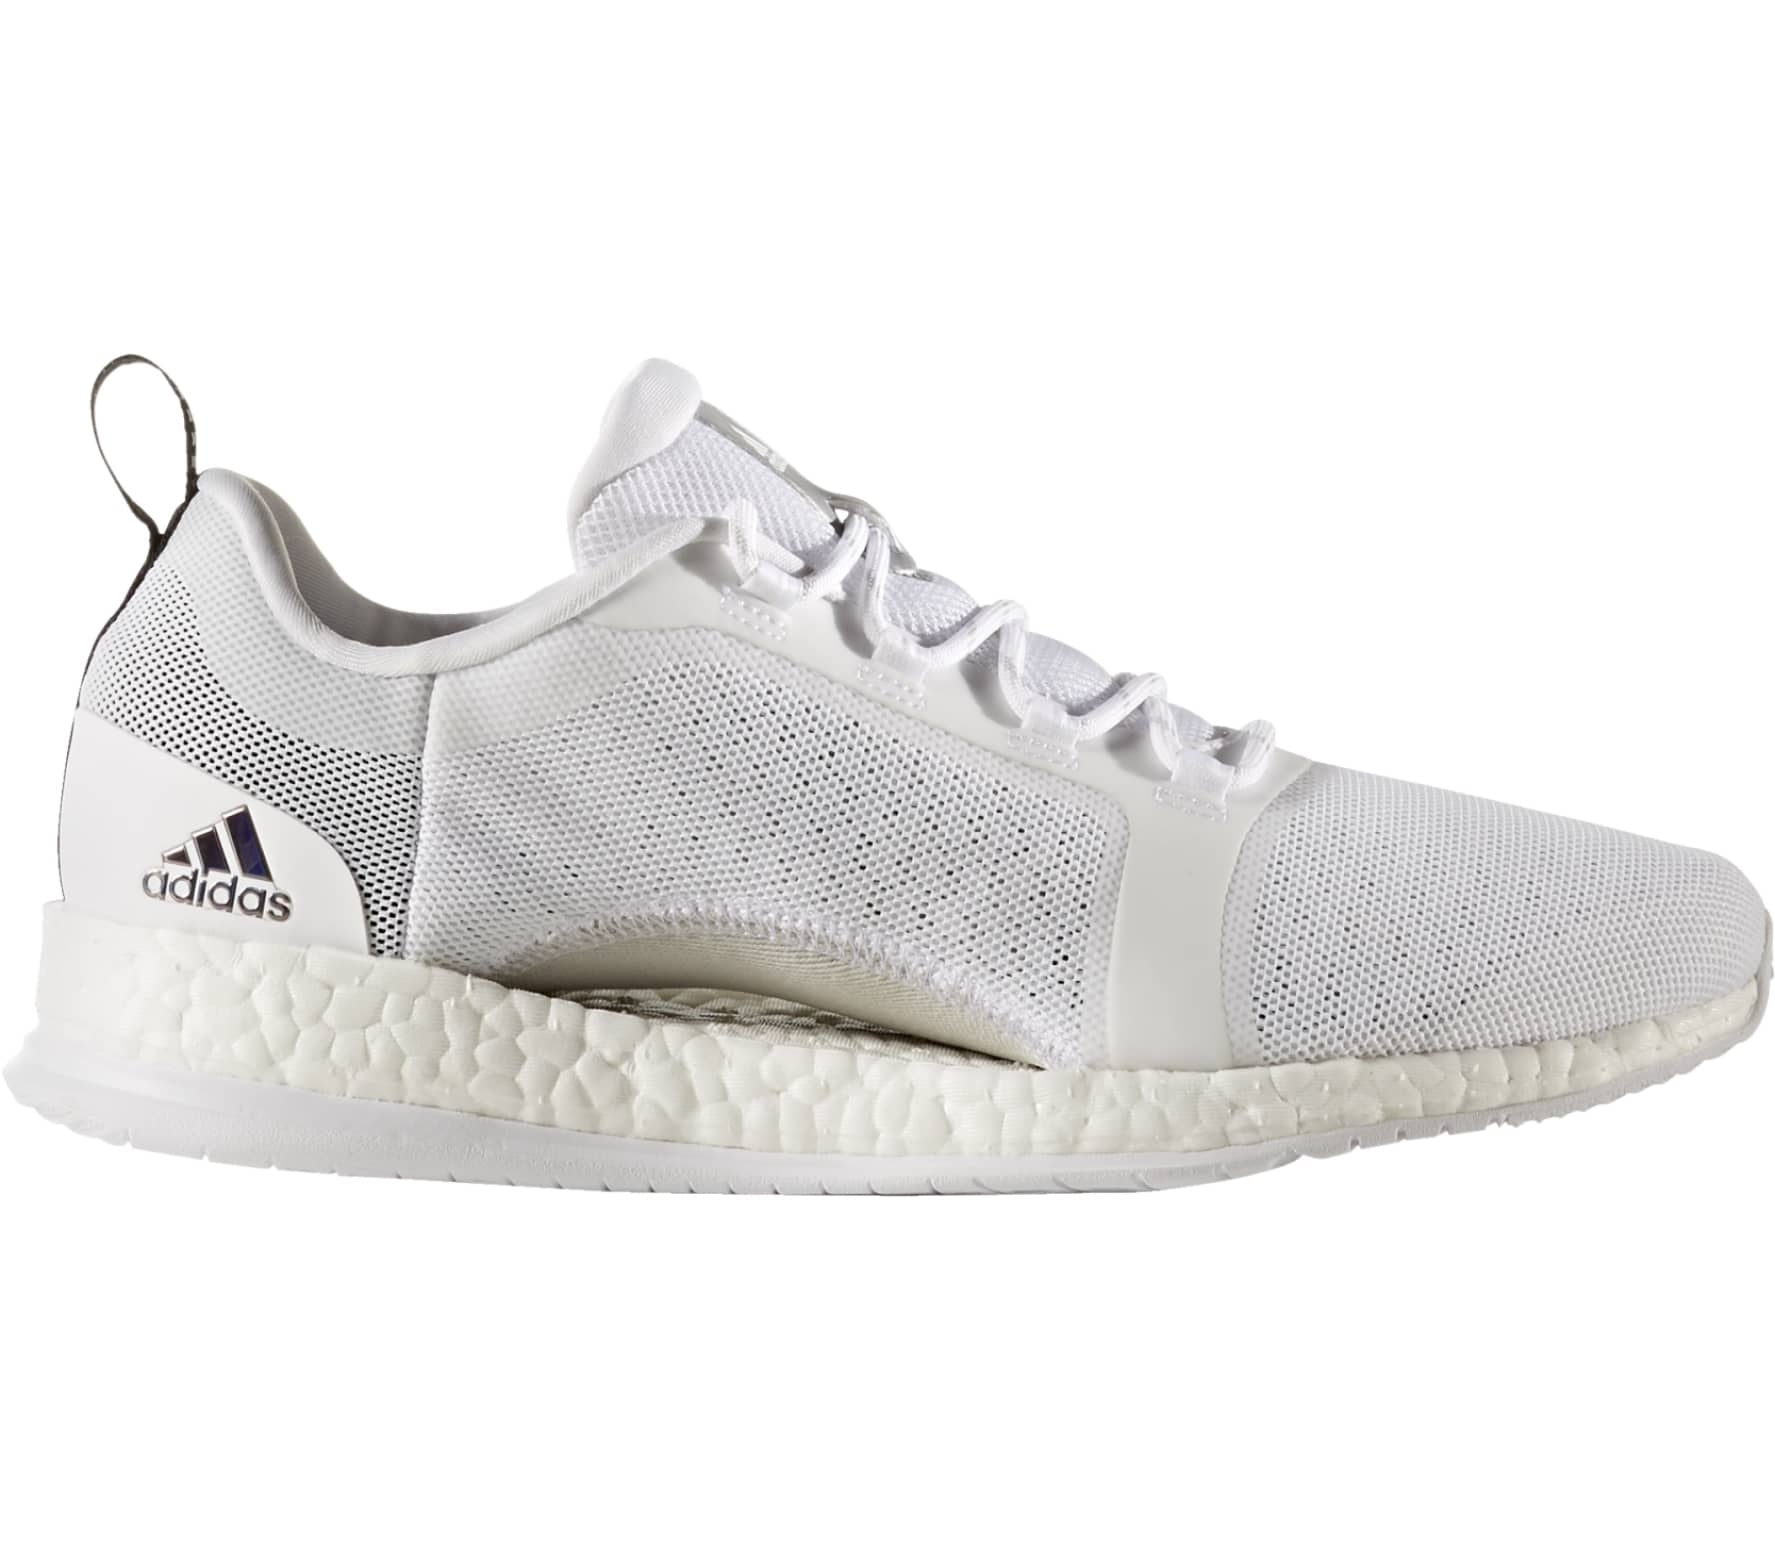 new product f1905 00c1e Adidas - Pure Boost X TR 2 women s training shoes (white grey)